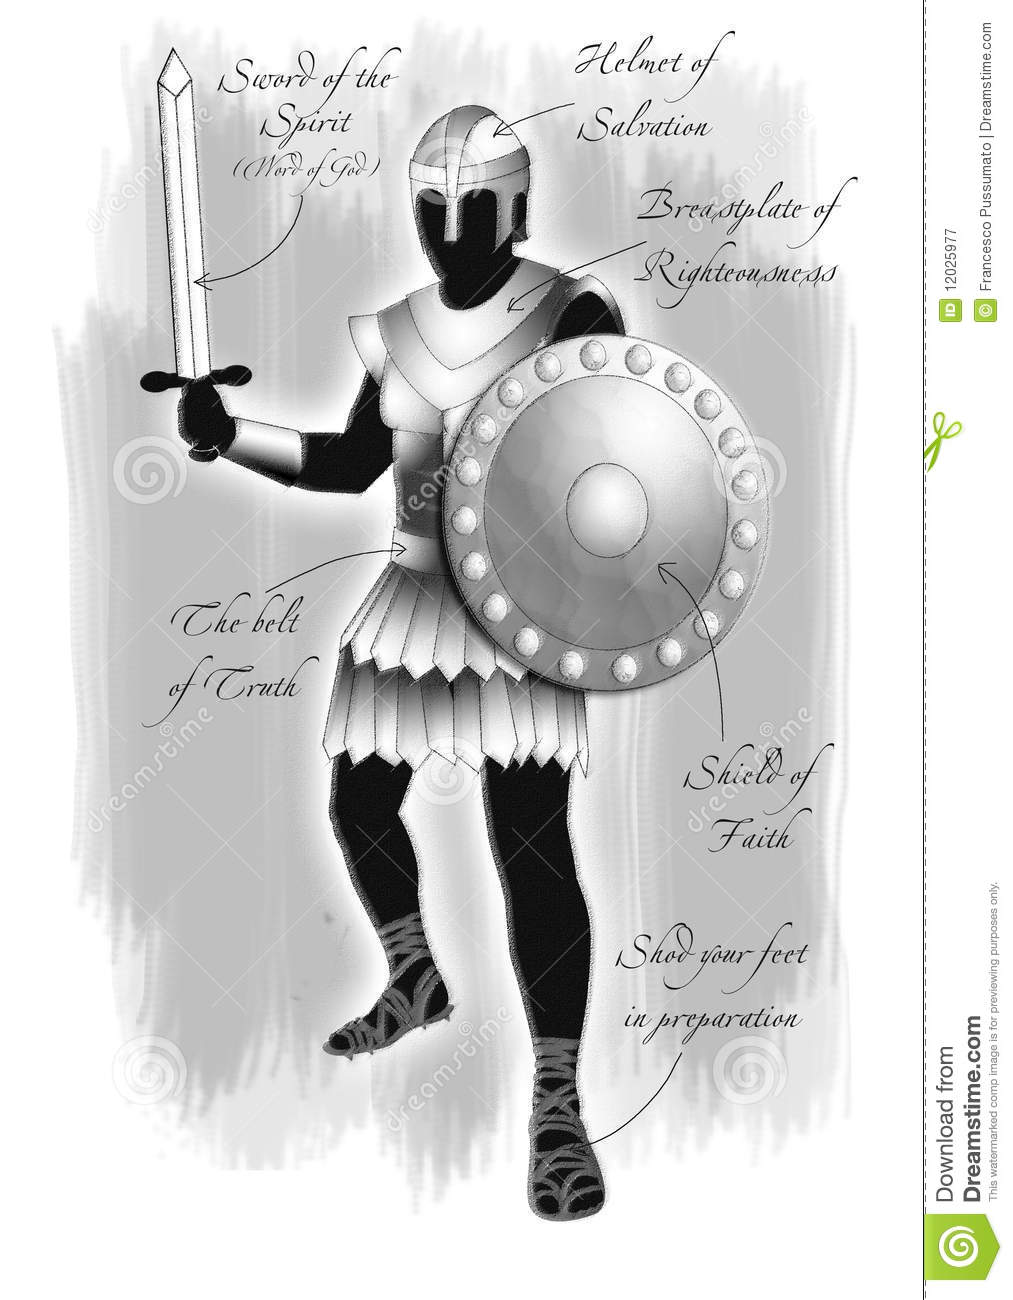 armor of god royalty free stock photography image 12025977